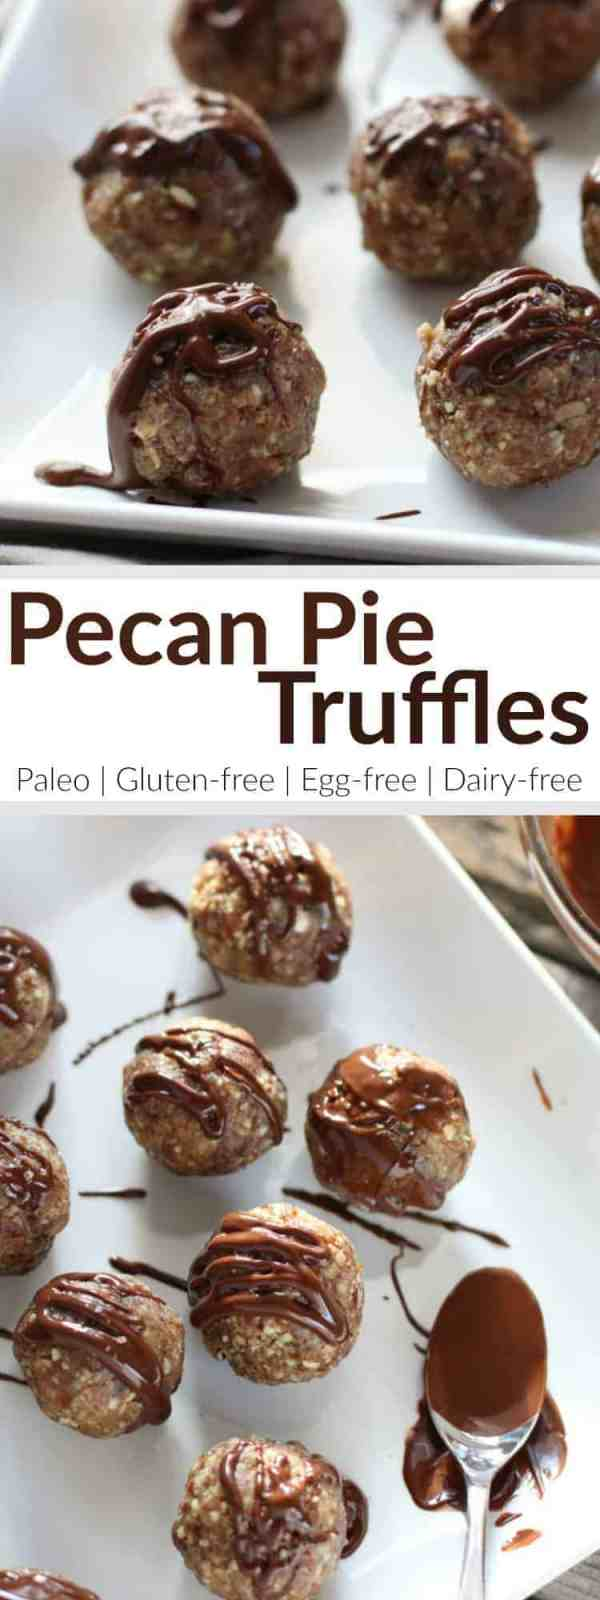 We took the best parts of the pie, added protein and then drizzled them with chocolate in these irresistible No-Bake Pecan Pie Truffles | Paleo | Grain-free | Gluten-free | Egg-free | Dairy-free | therealfoodrds.com